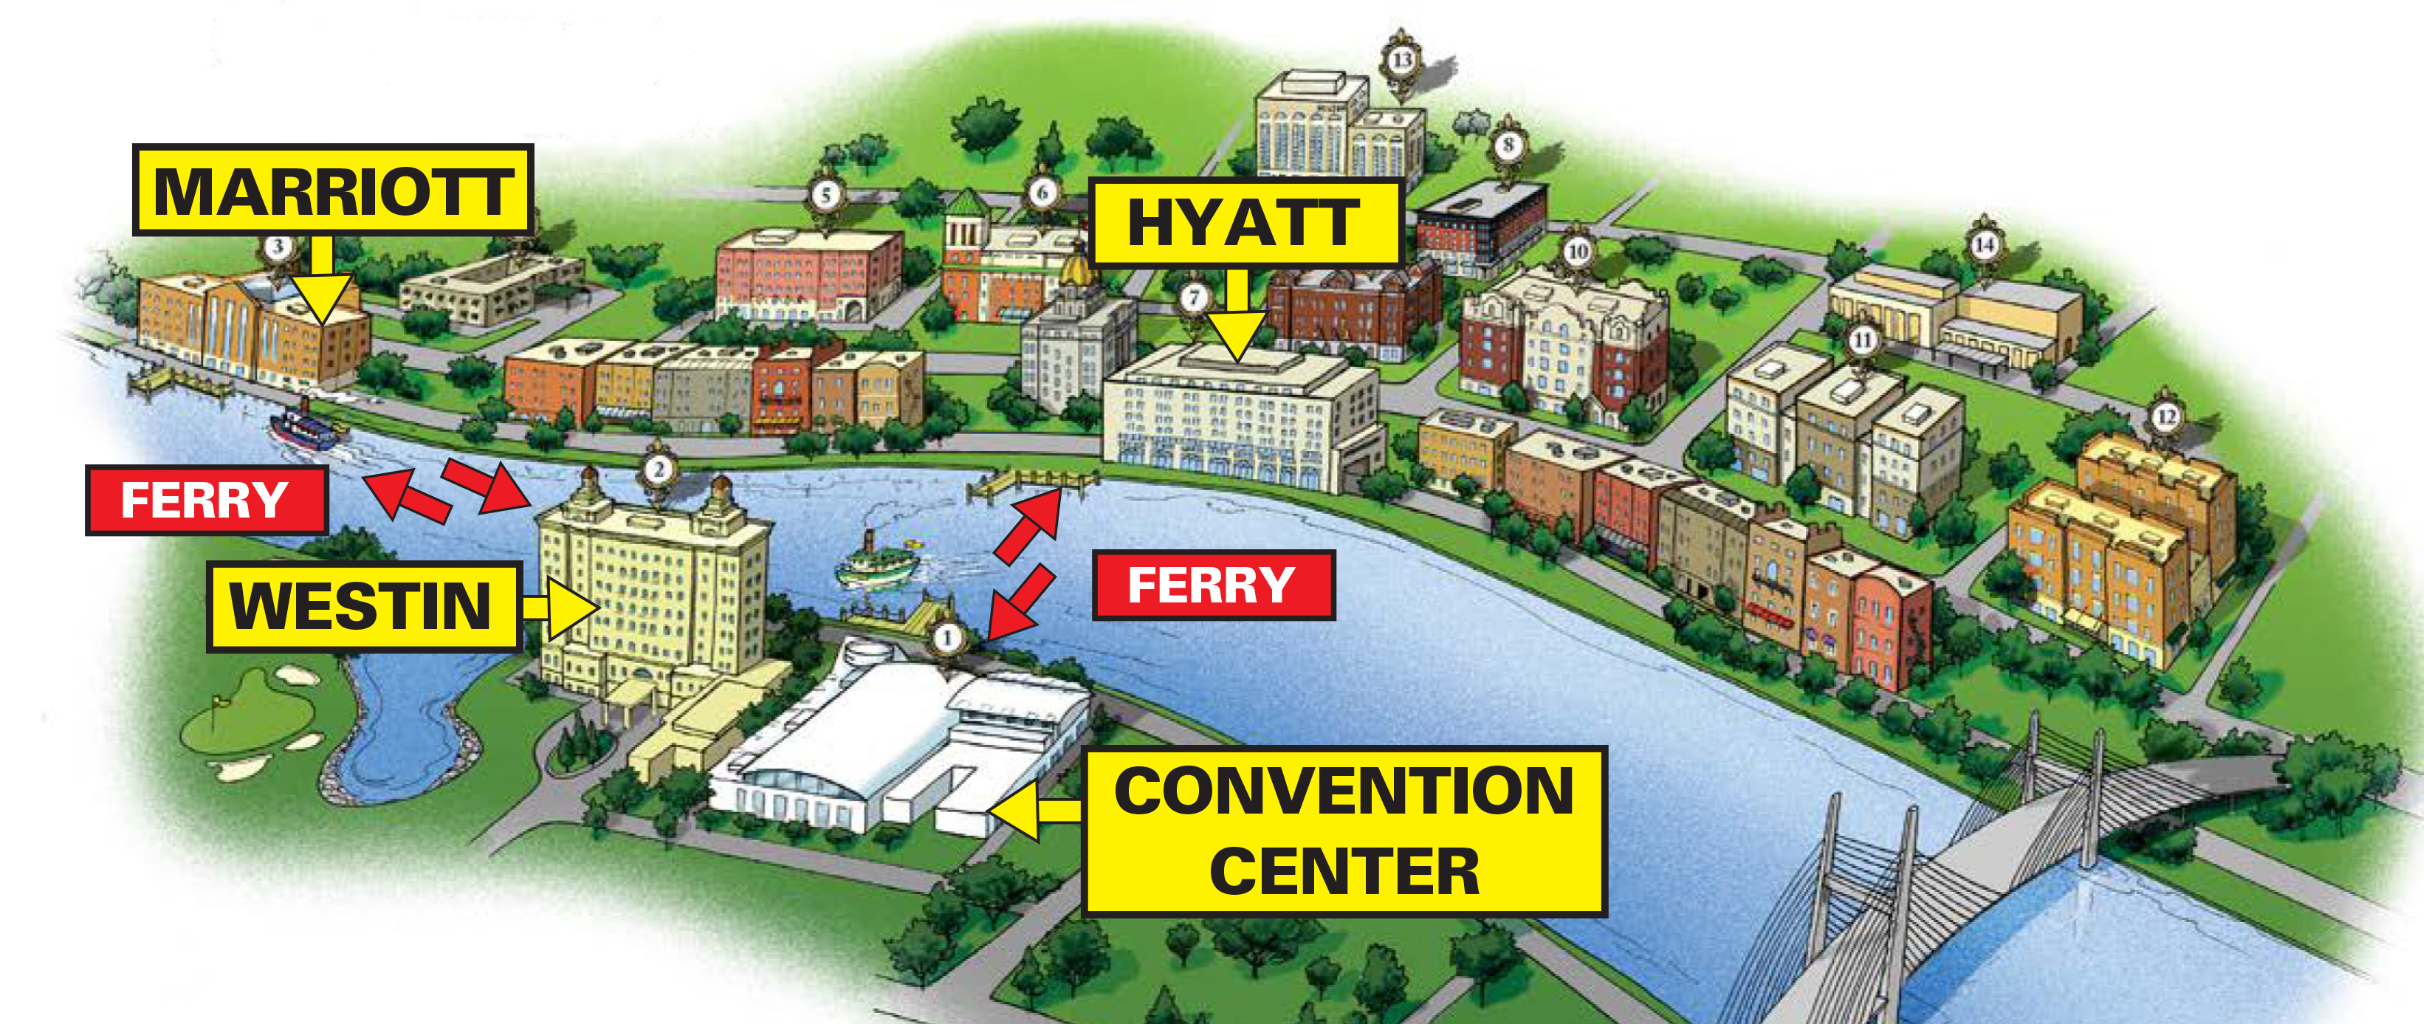 Ferry Map